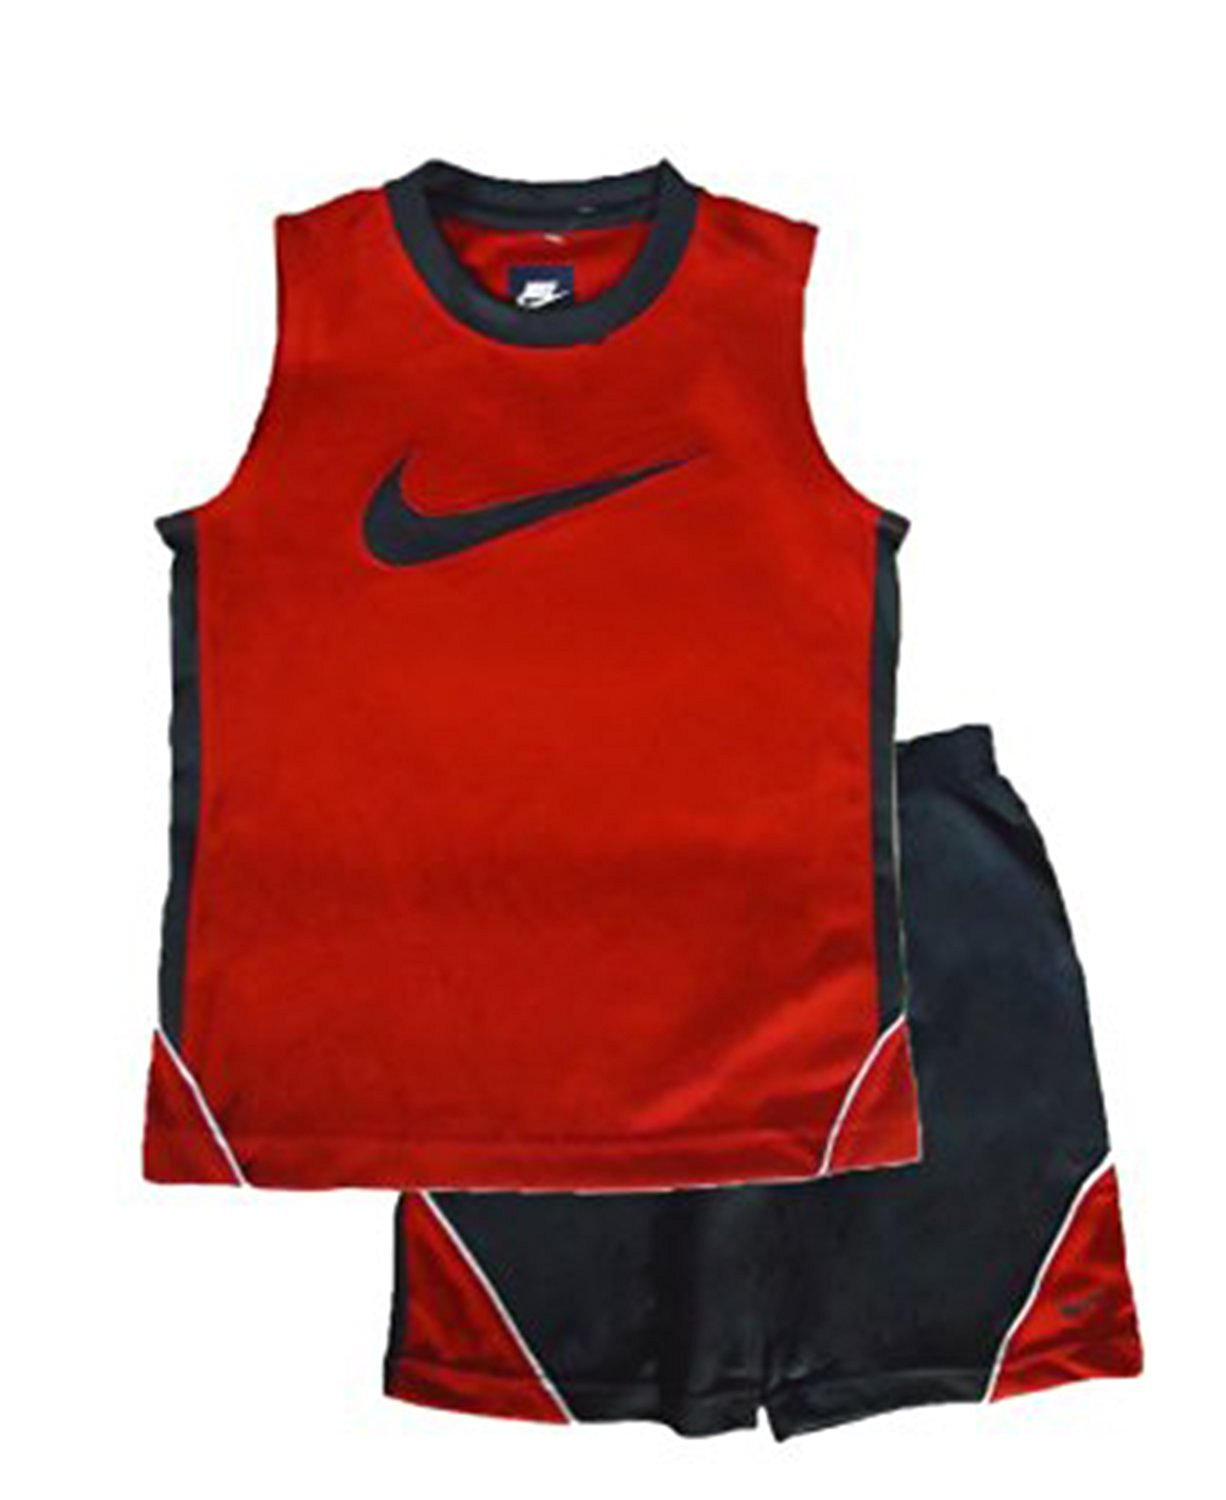 Shop sportworlds.gq with free shipping. Discover the baby boys' clothing collection. Enjoy complimentary gift wrapping.